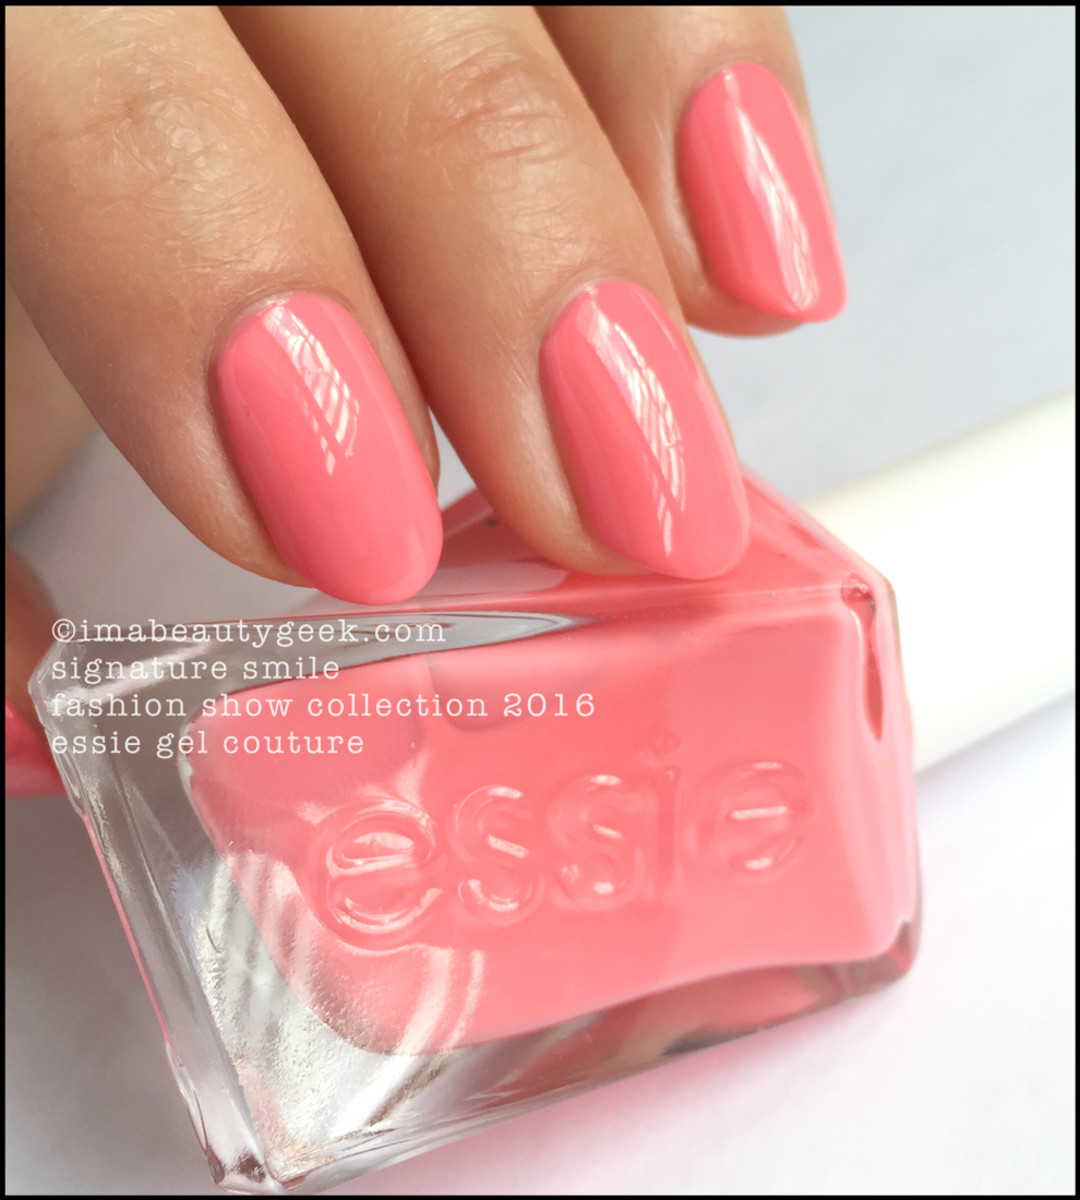 ESSIE GEL COUTURE LAUNCH COLLECTION: ALL 42 SWATCHES